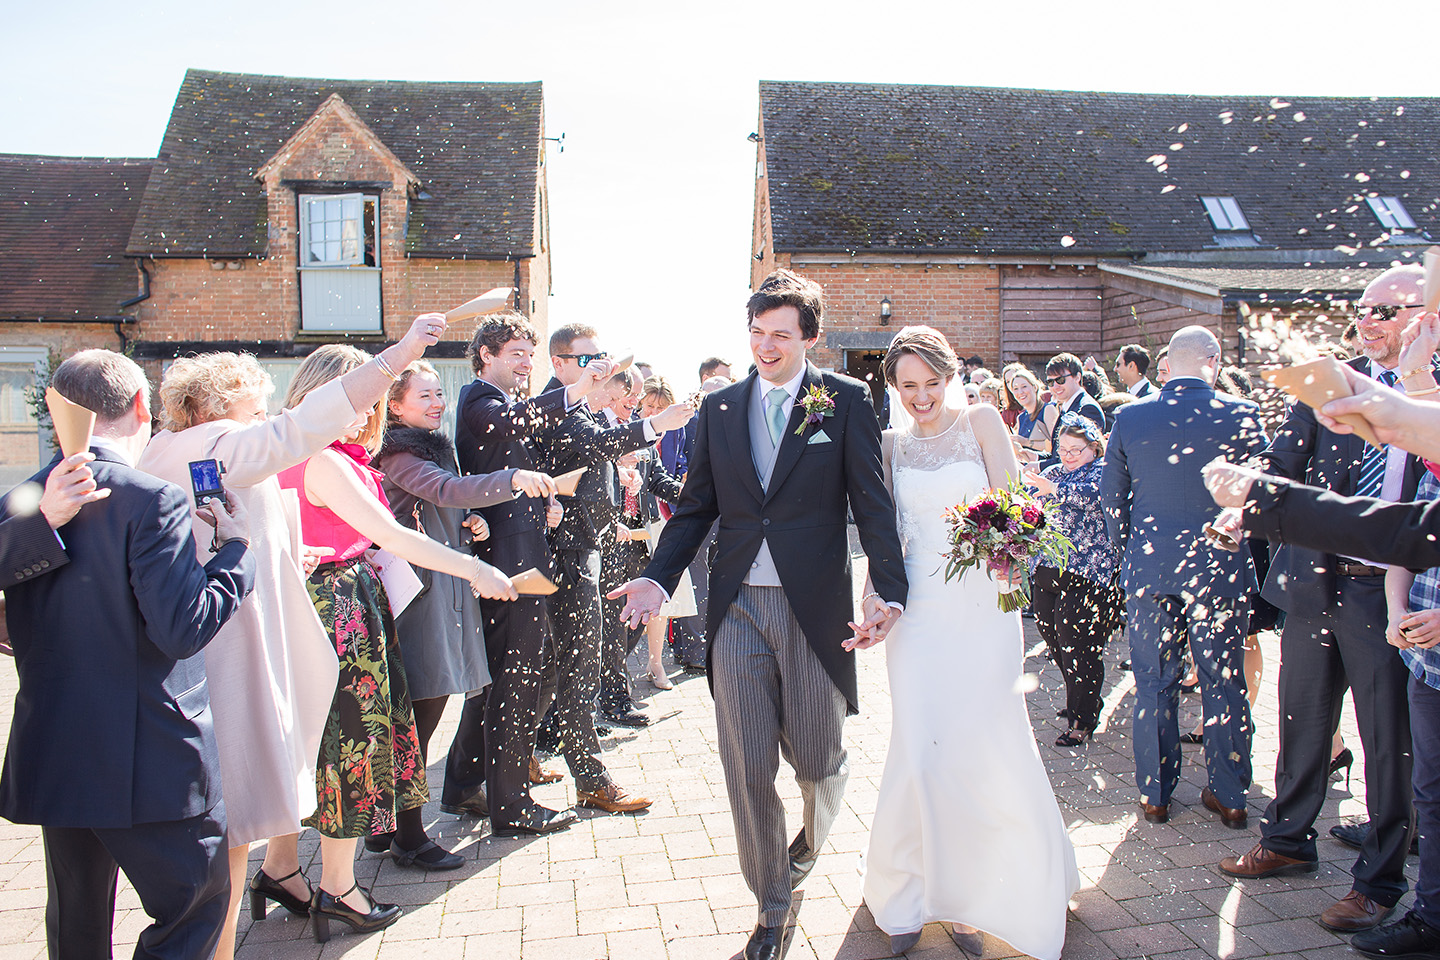 The bride and groom are showered in confetti after saying their vows in the Rickety Barn at Bassmead Manor Barns